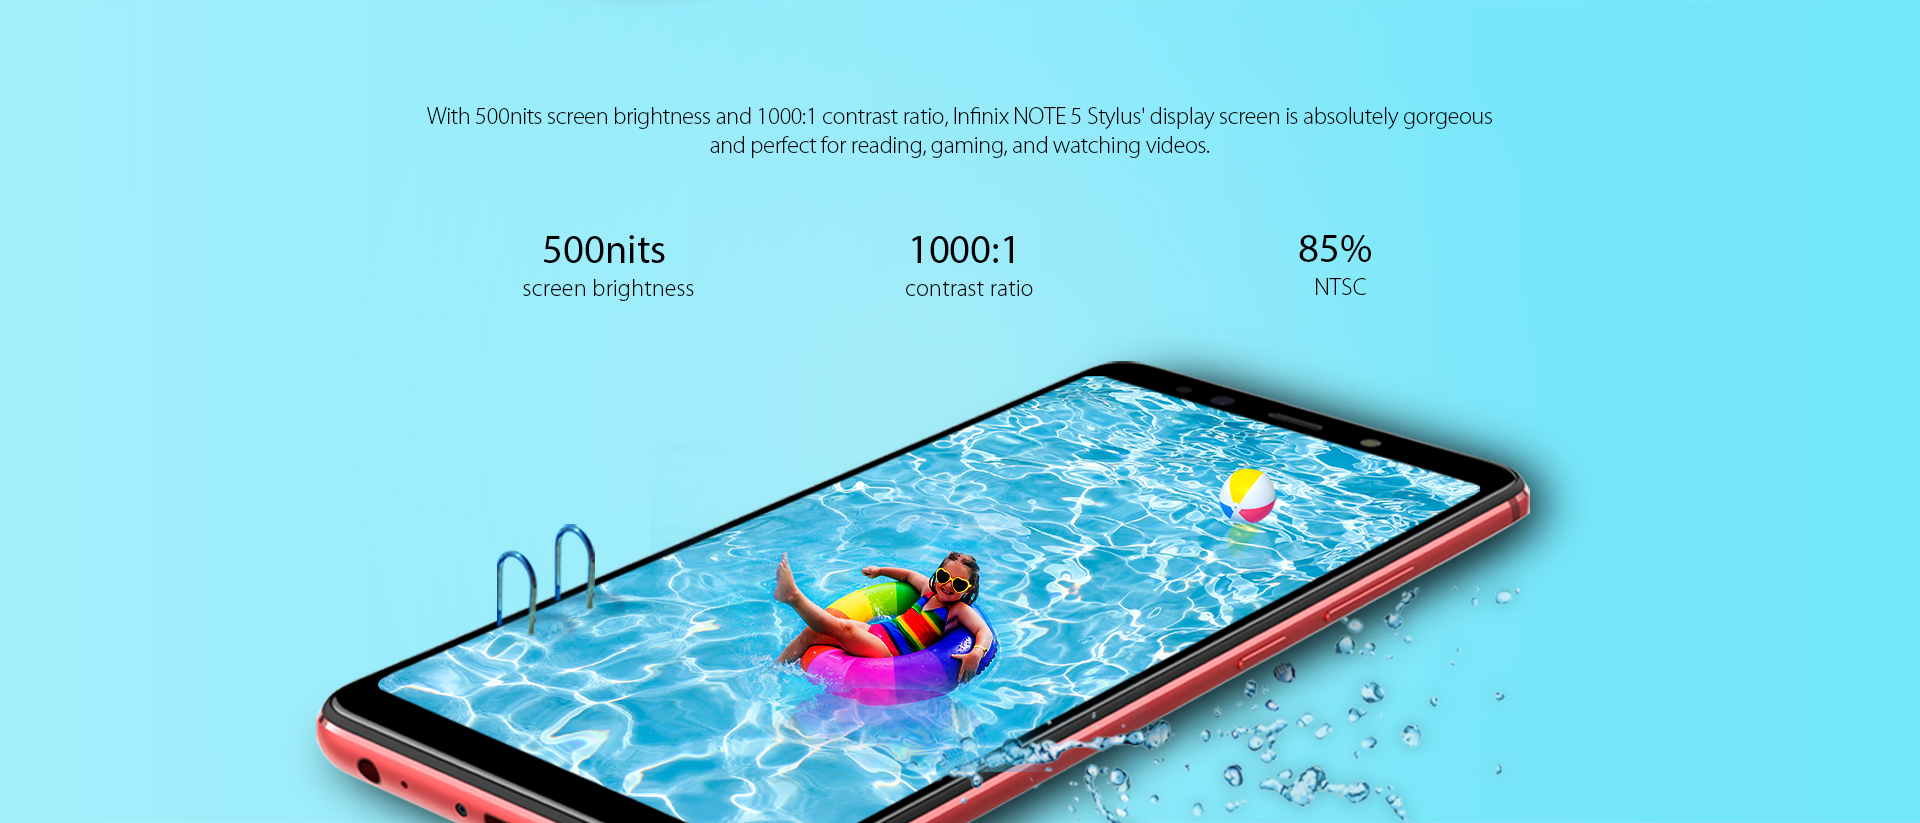 Infinix Note 5 Pro stylus Specification, review and price